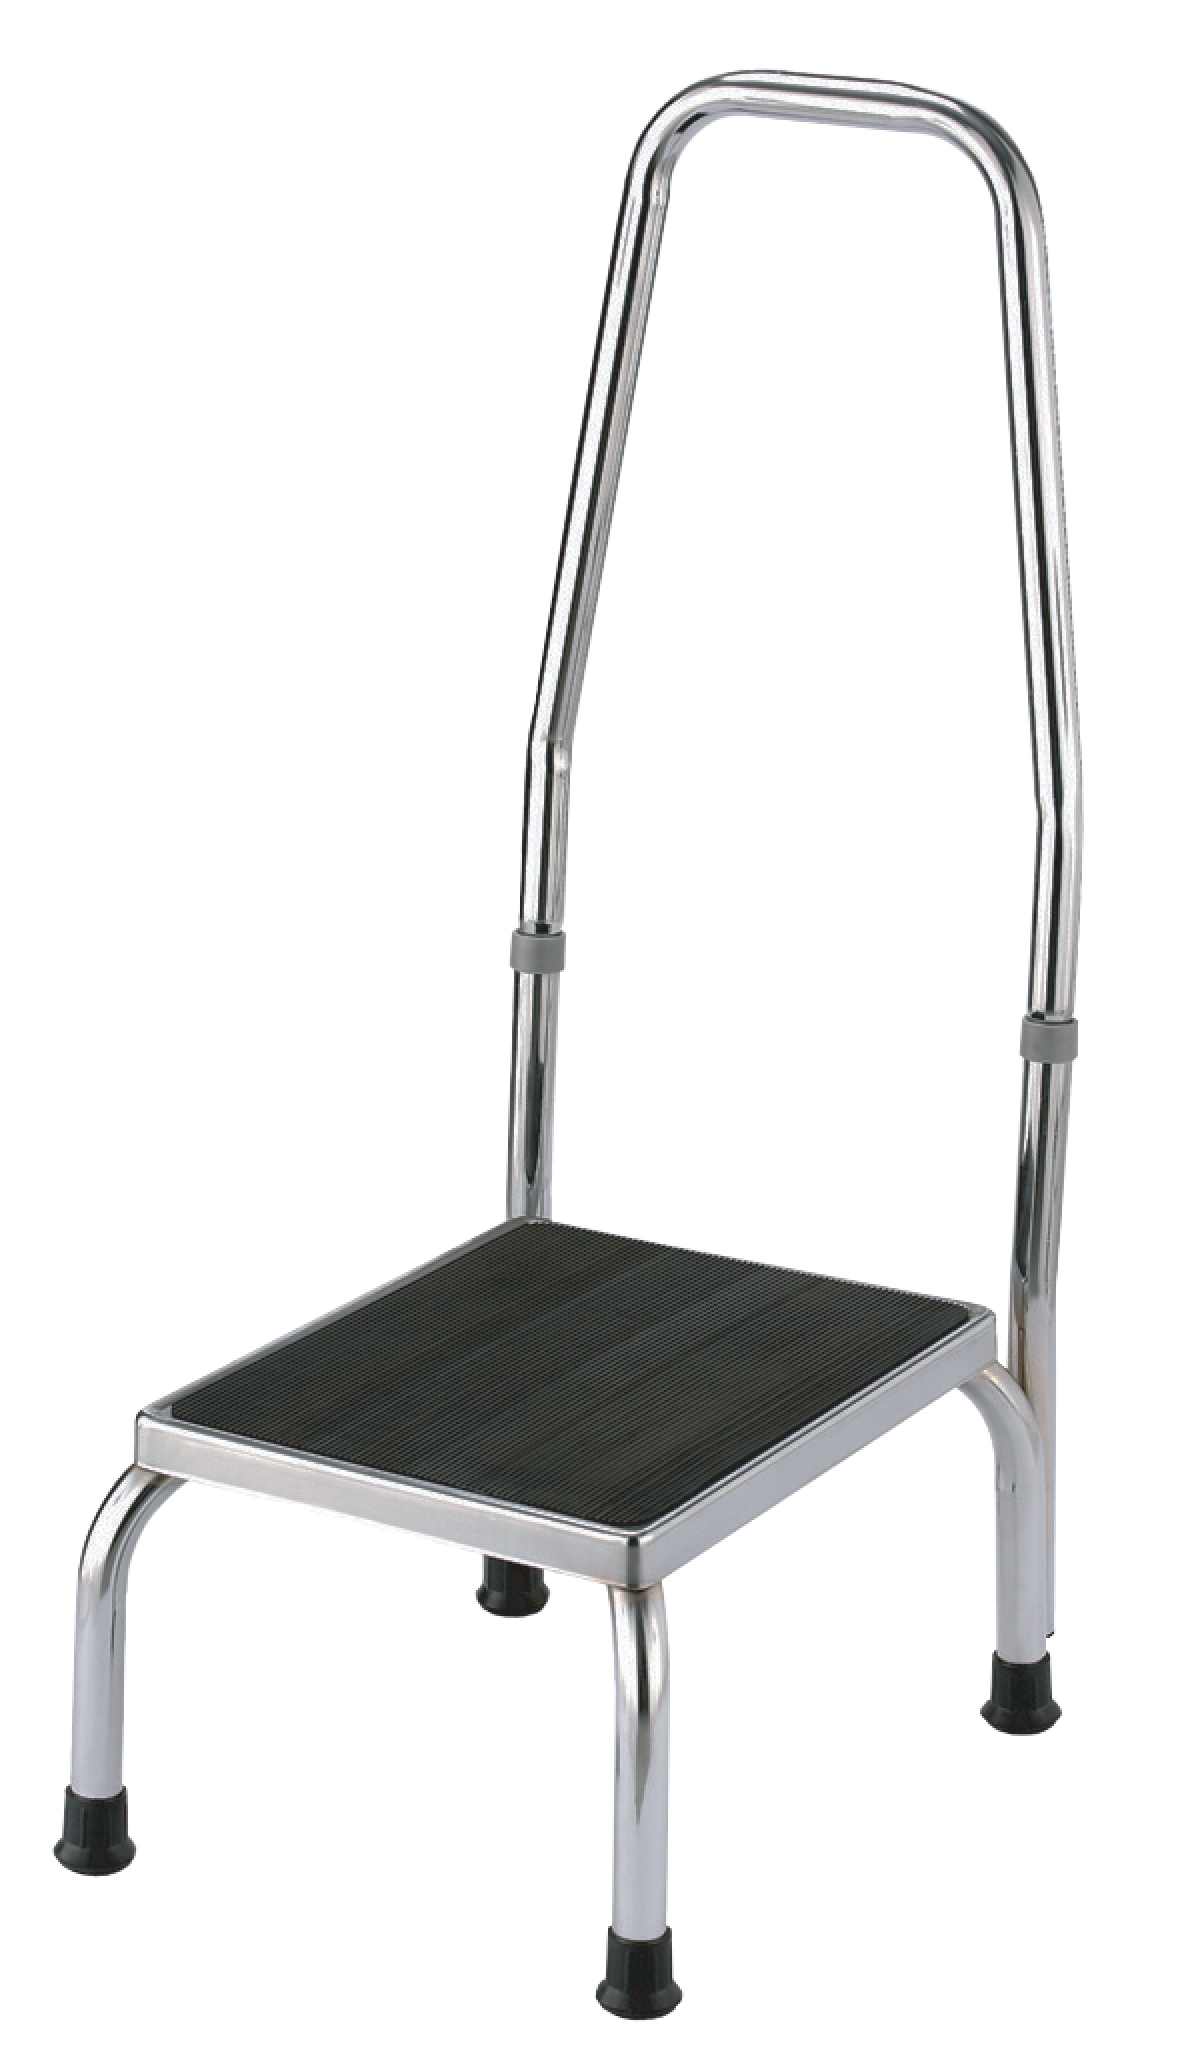 Step Stool With Handle Goldfern Mobility